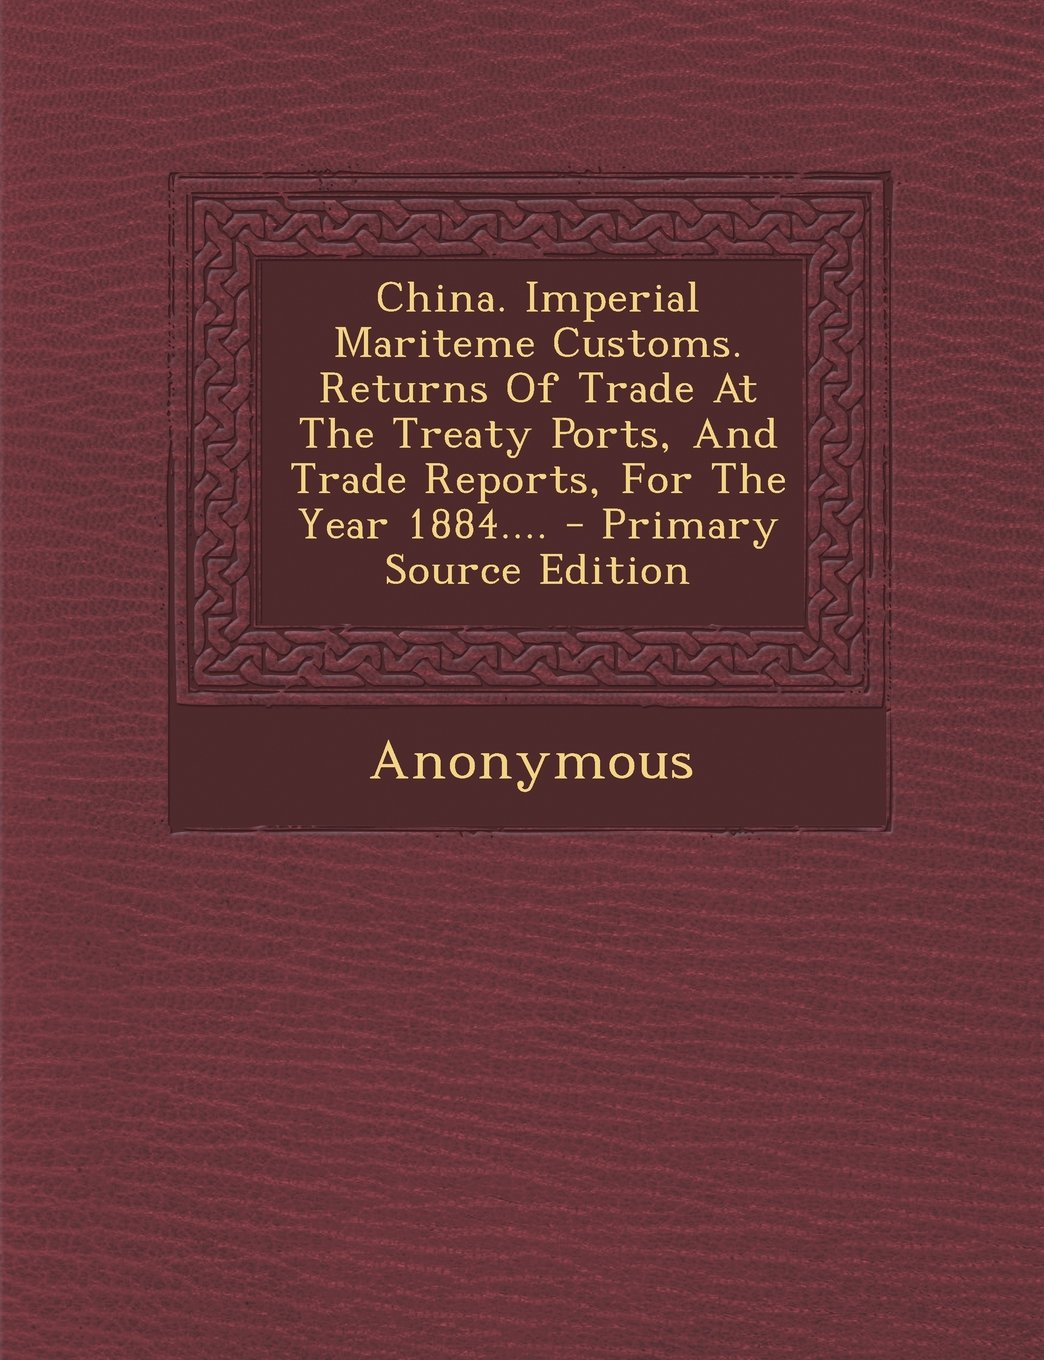 Download China. Imperial Mariteme Customs. Returns Of Trade At The Treaty Ports, And Trade Reports, For The Year 1884.... - Primary Source Edition PDF